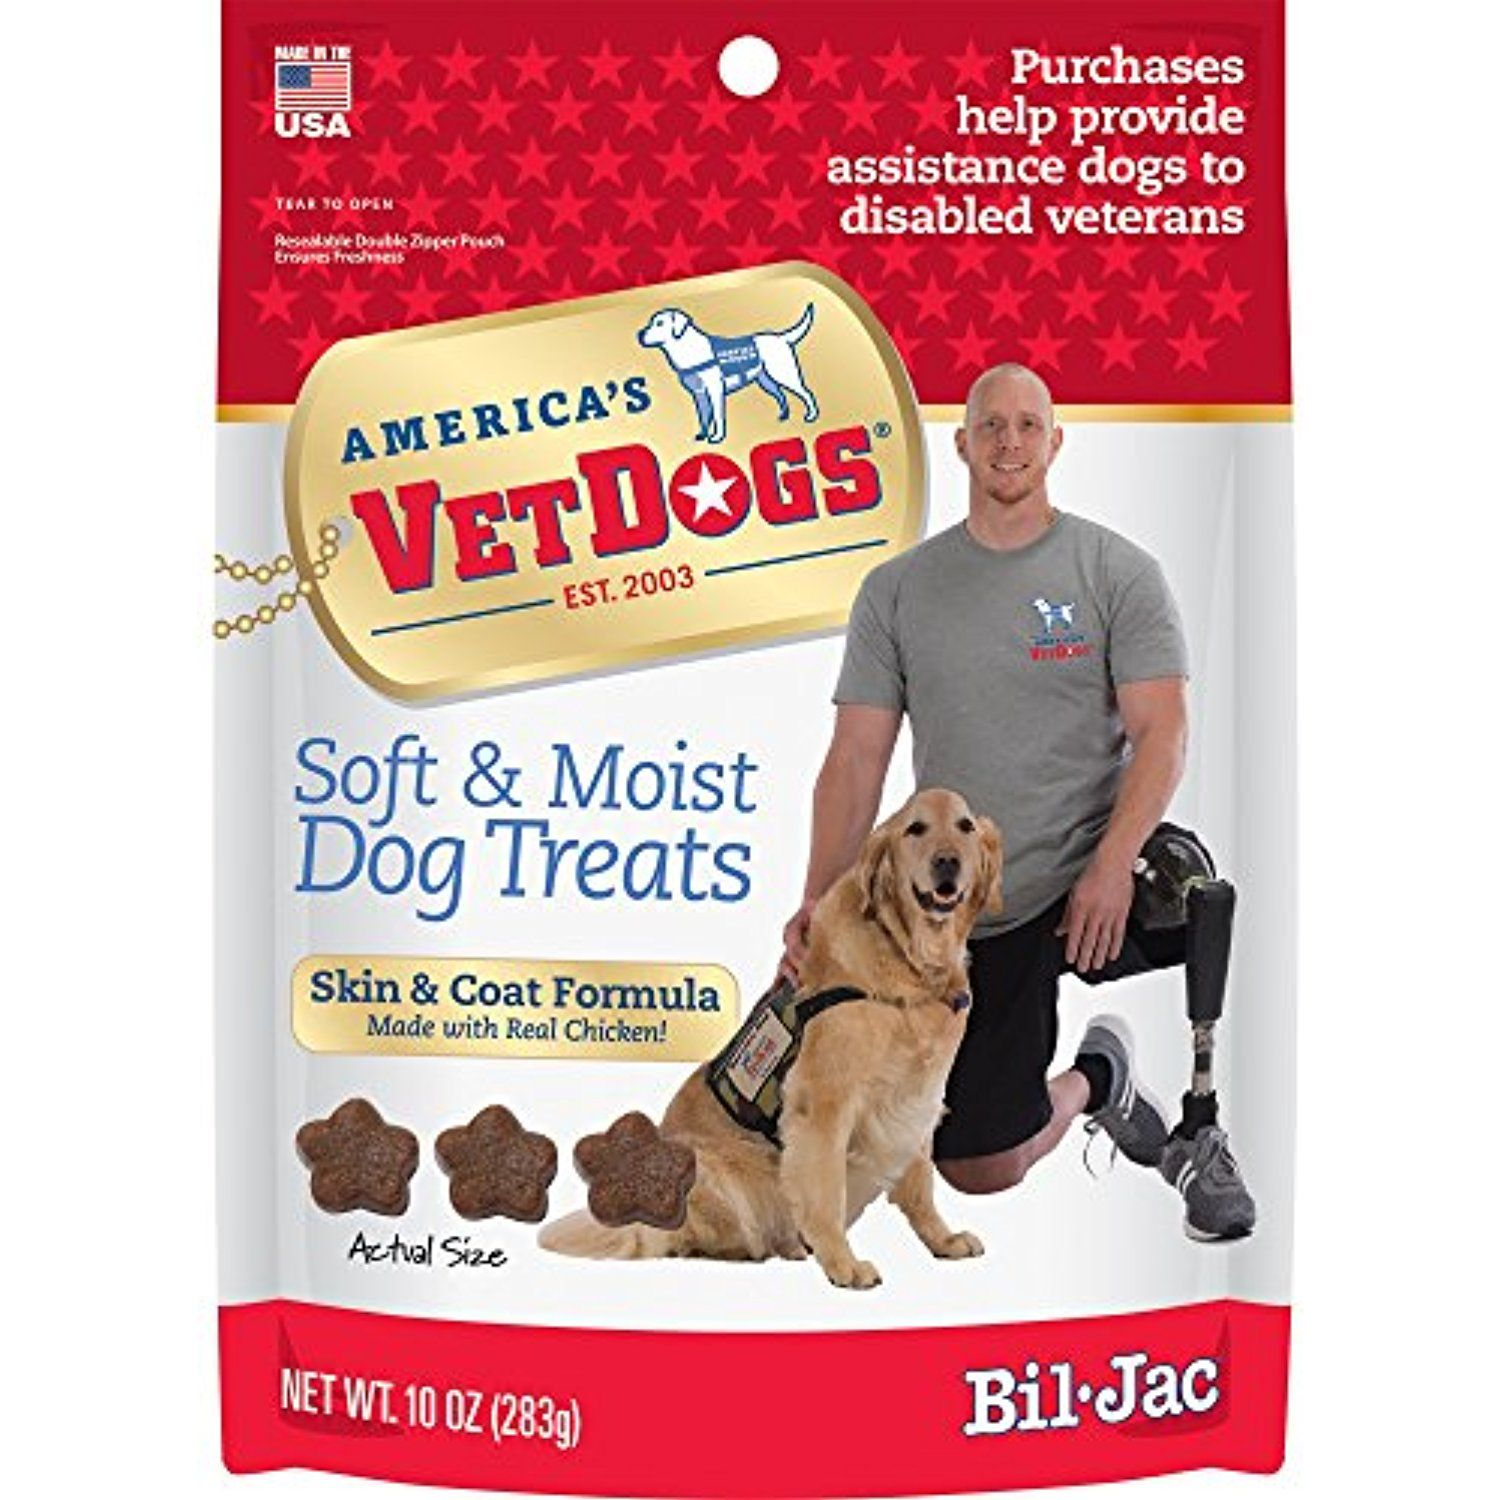 Vet Dog 10oz Dog Treats You Can Read More Reviews Of The